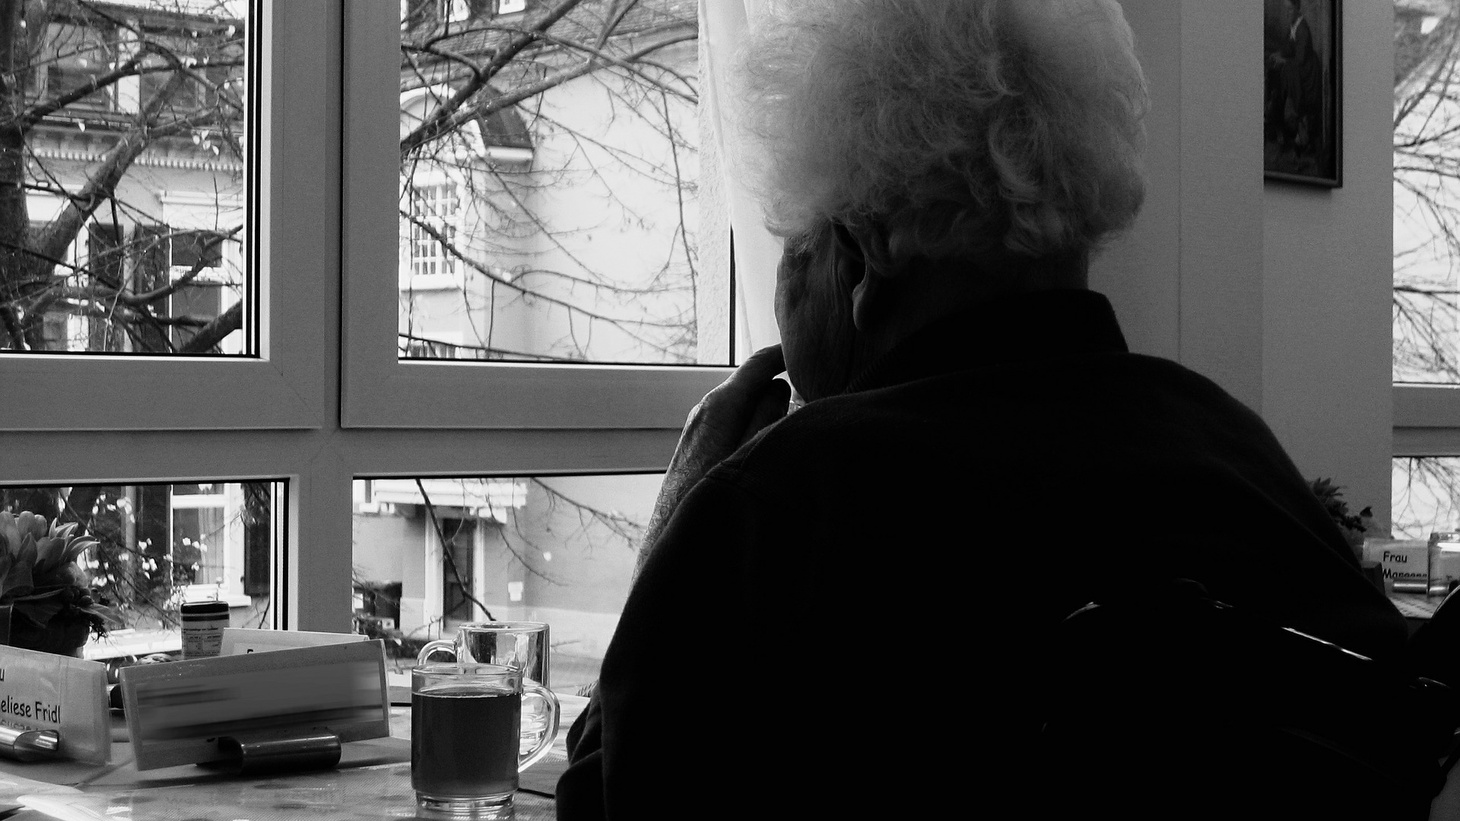 An emerging trend in the COVID-19 outbreak finds seniors and loved ones interacting through the window of care facilities.